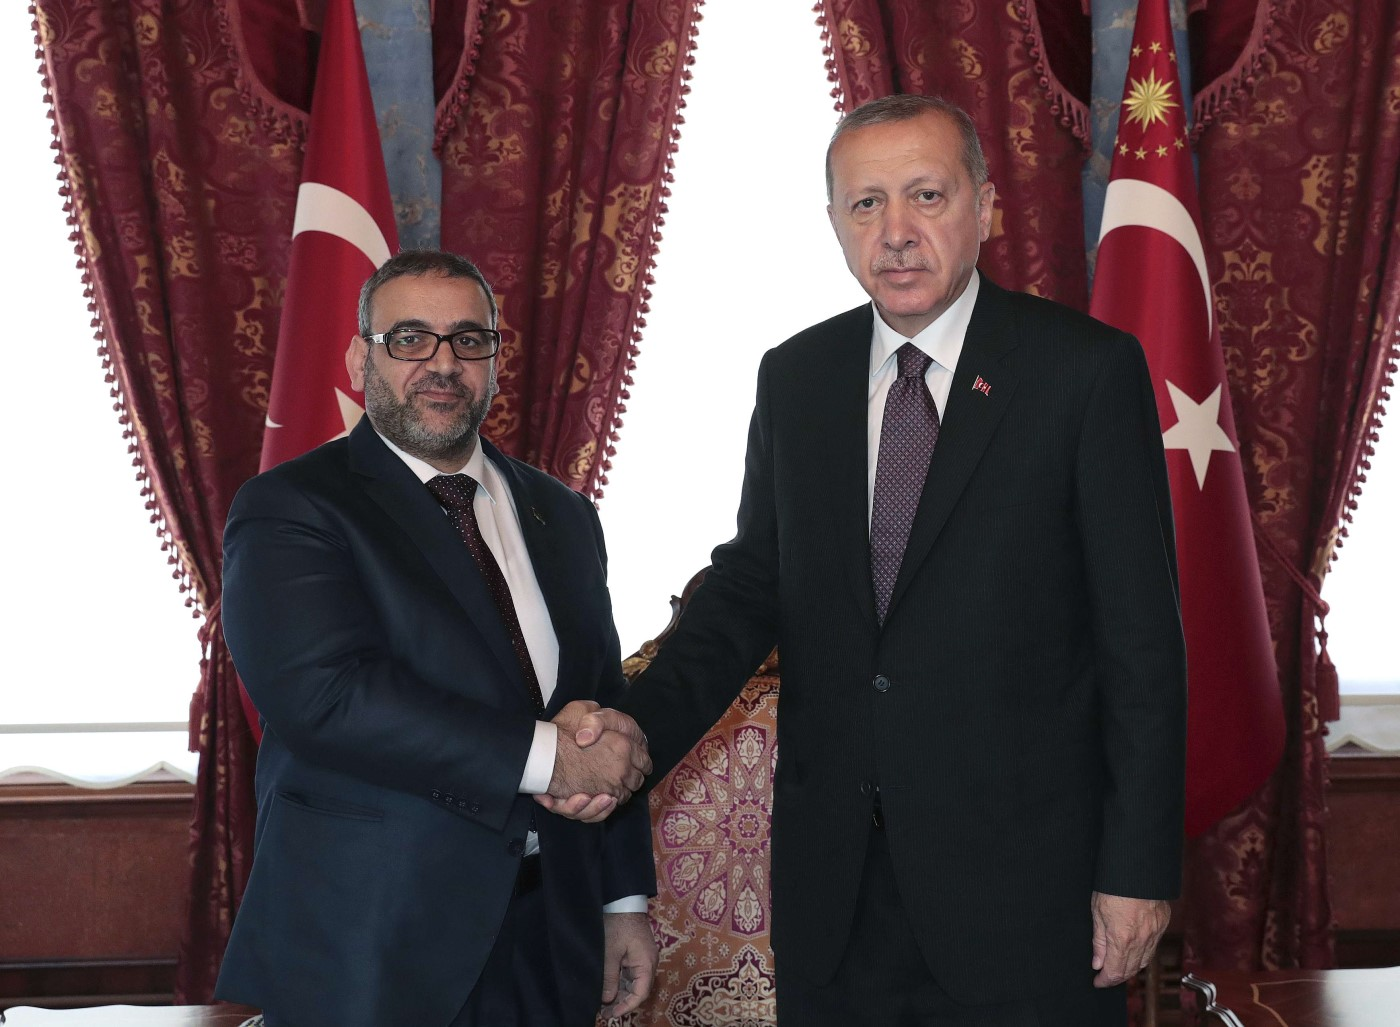 Turkish President Recep Tayyip Erdogan, right, and Khaled Al-Meshri, President of the High Council of State of Libya, shake hands before a meeting, in Istanbul, Friday, April 19, 2019. (AP)